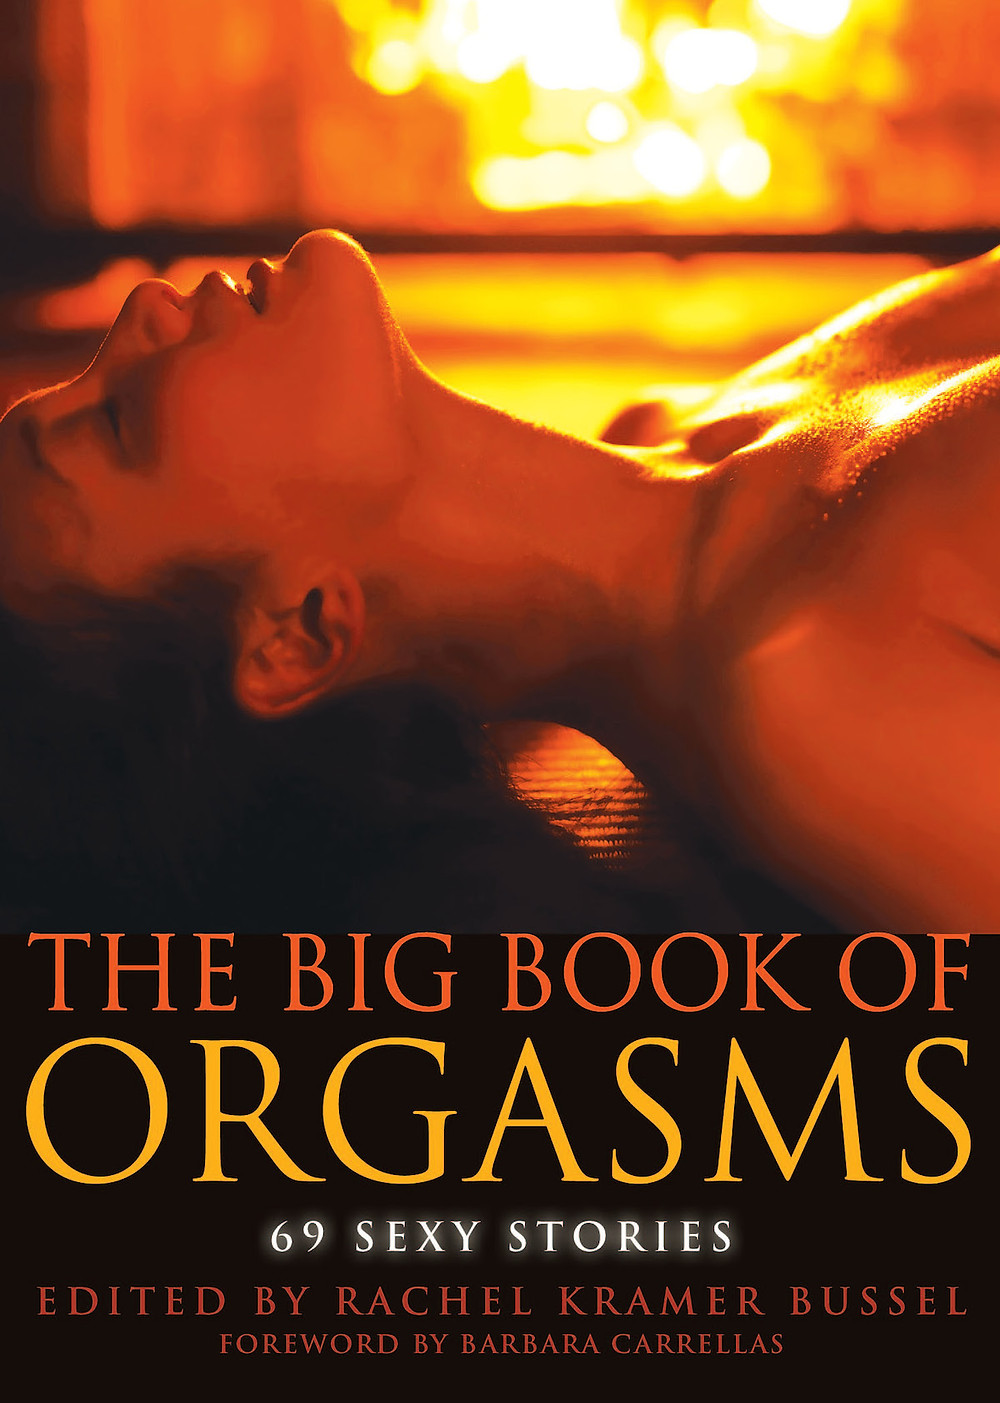 Book Cover of the Erotic Fiction Collection The Big Book of Orgasms by Rachel Kramer Bussel